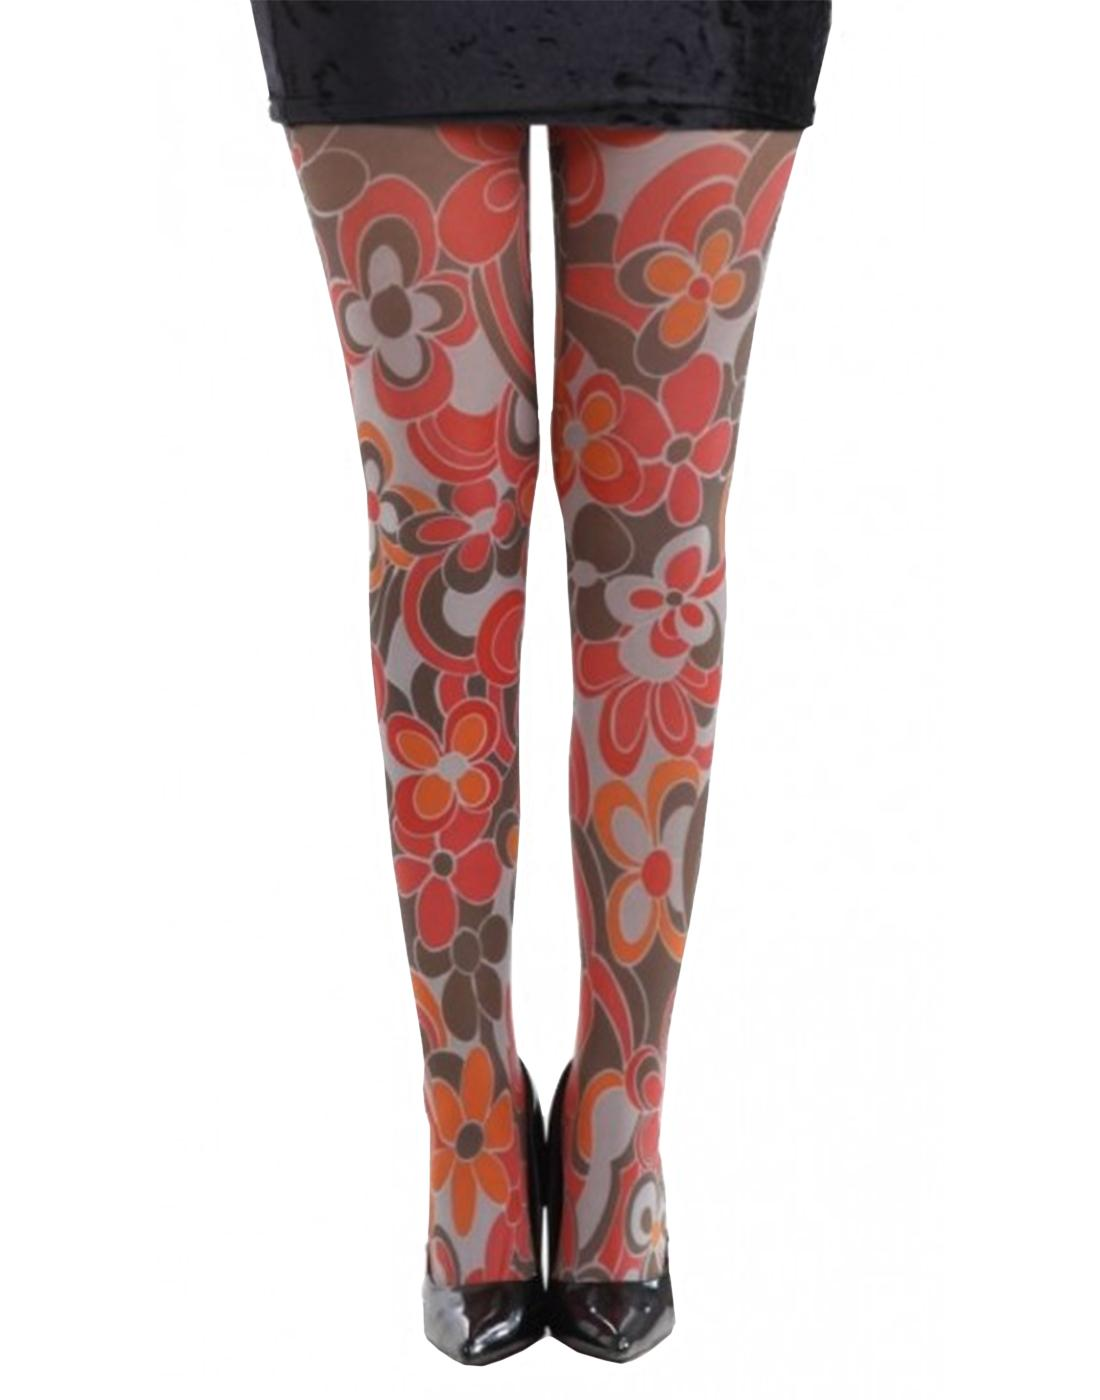 +PAMELA MANN Clover Retro 60s Mod Pop Art Tights